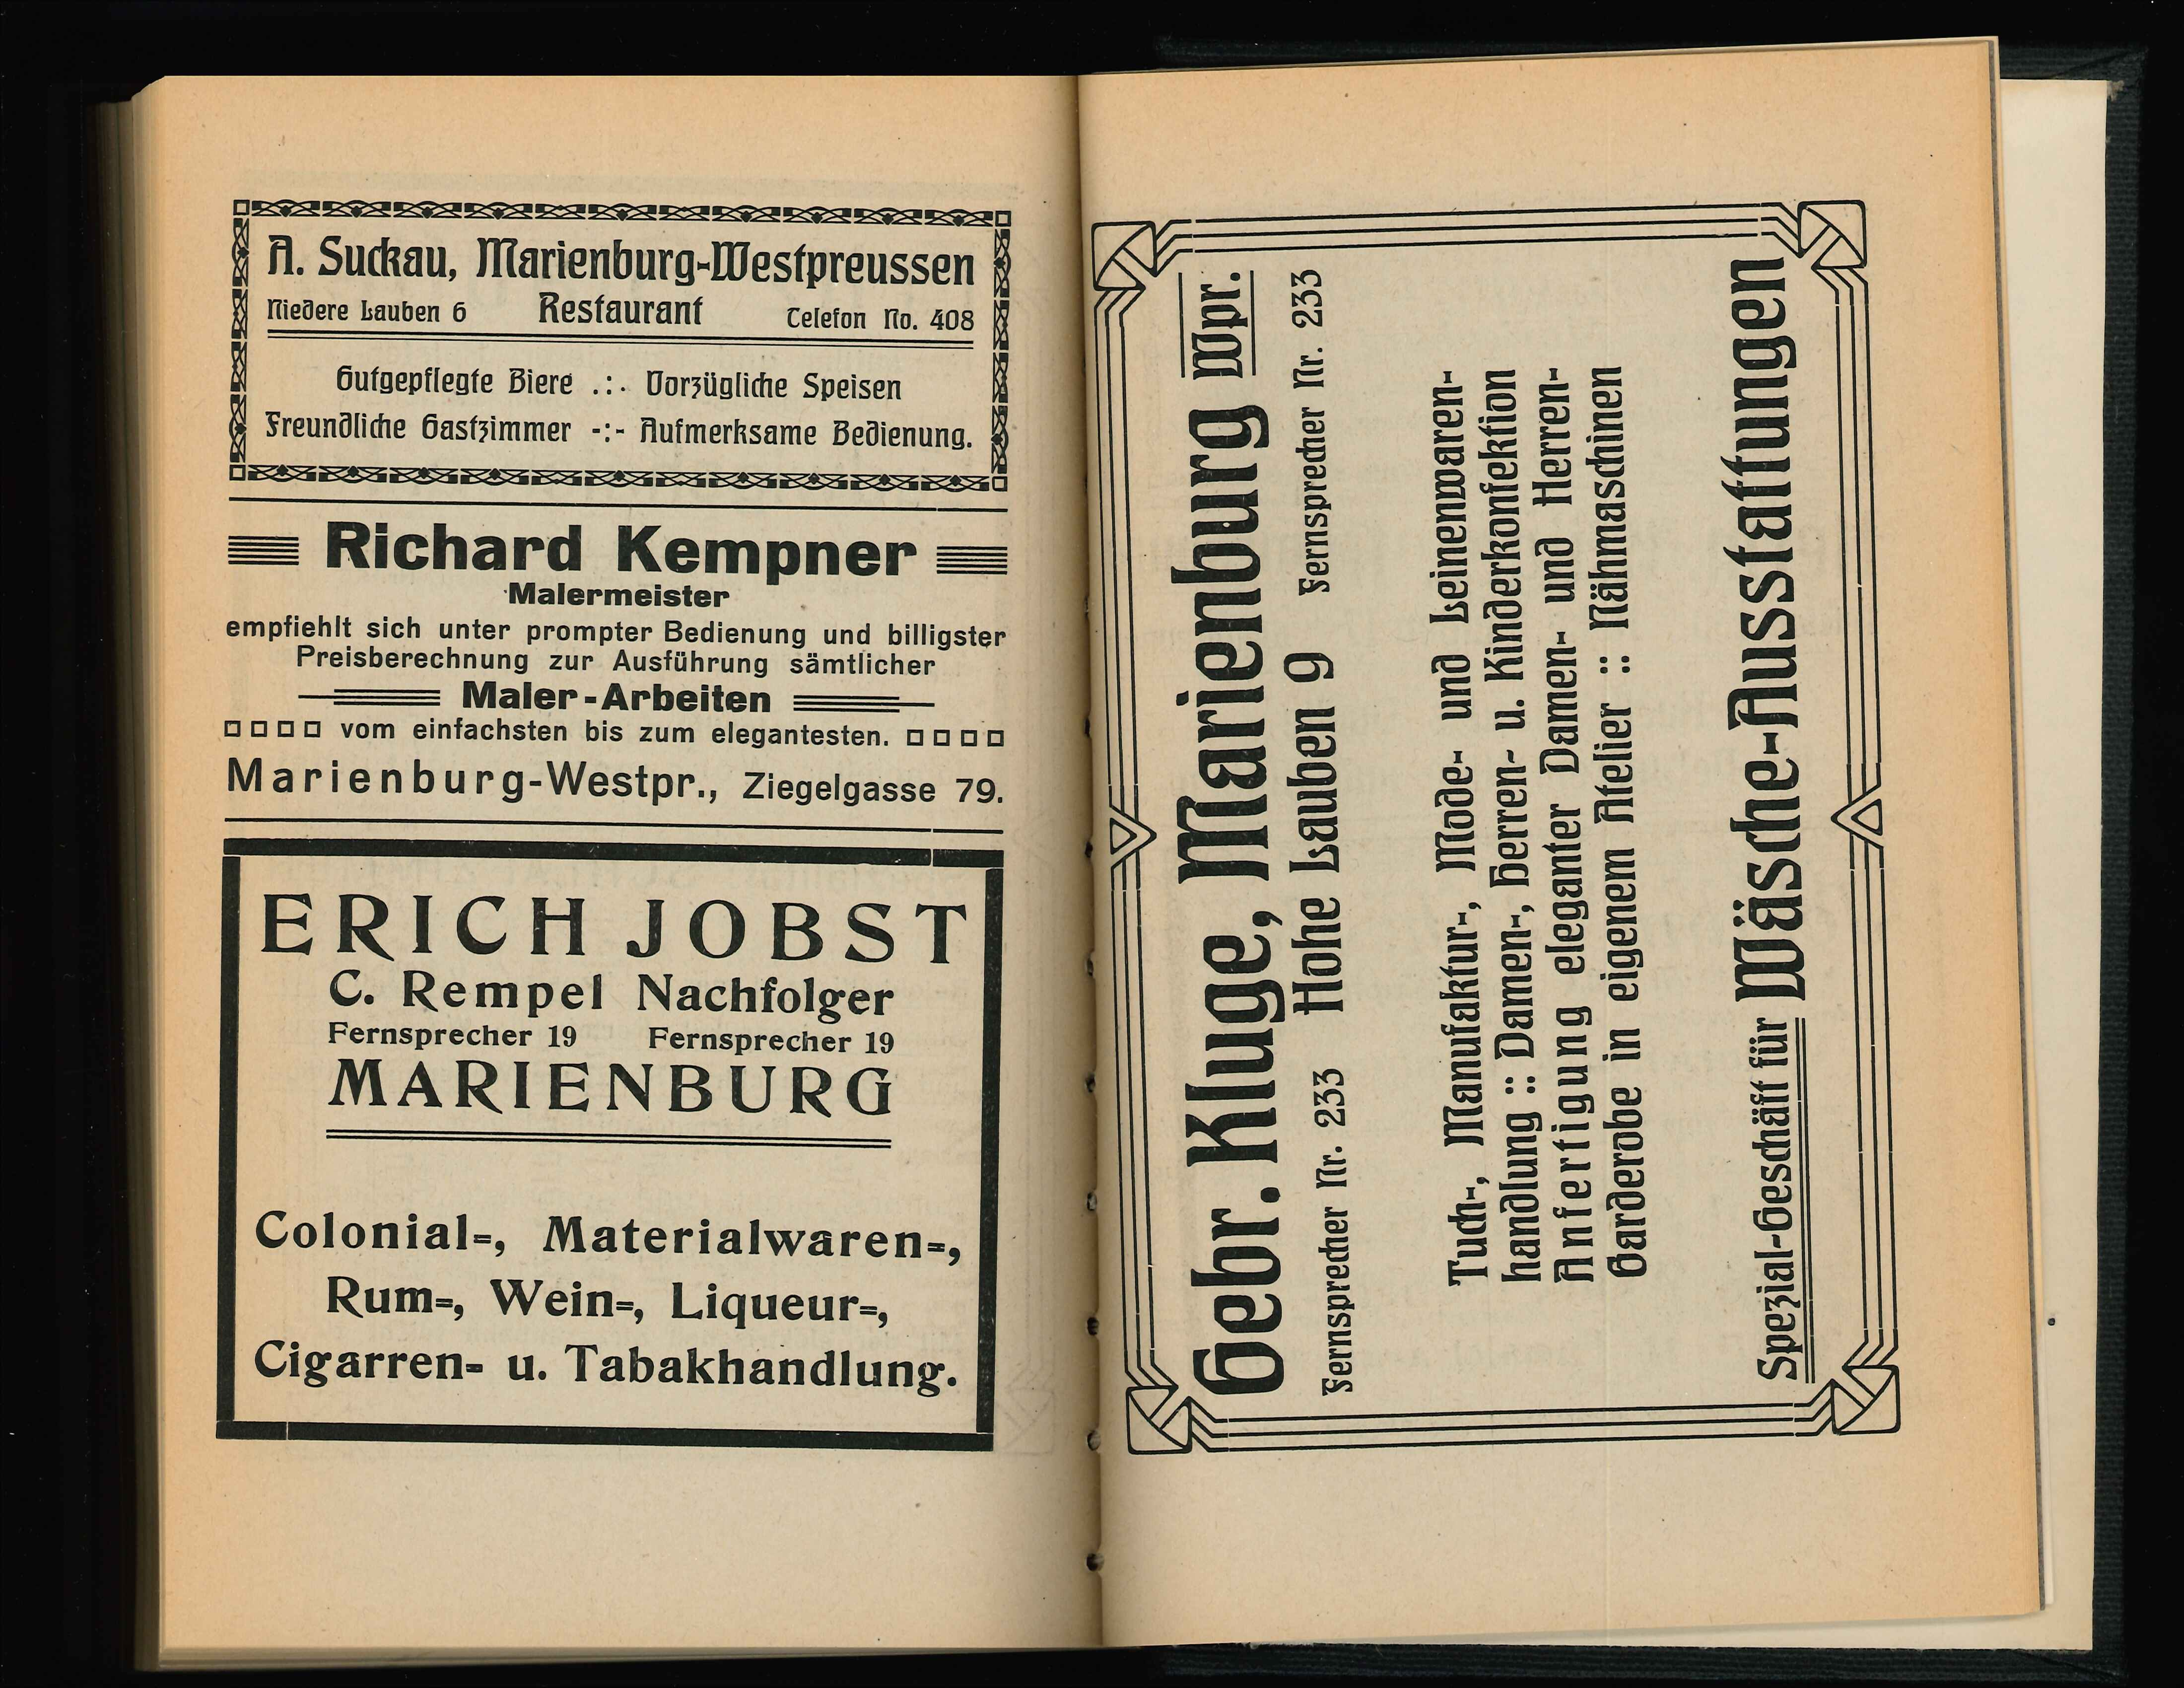 Bettdecken Nach Mass Index Of Periodicals Christlicher Gemeinde Kalender 1918